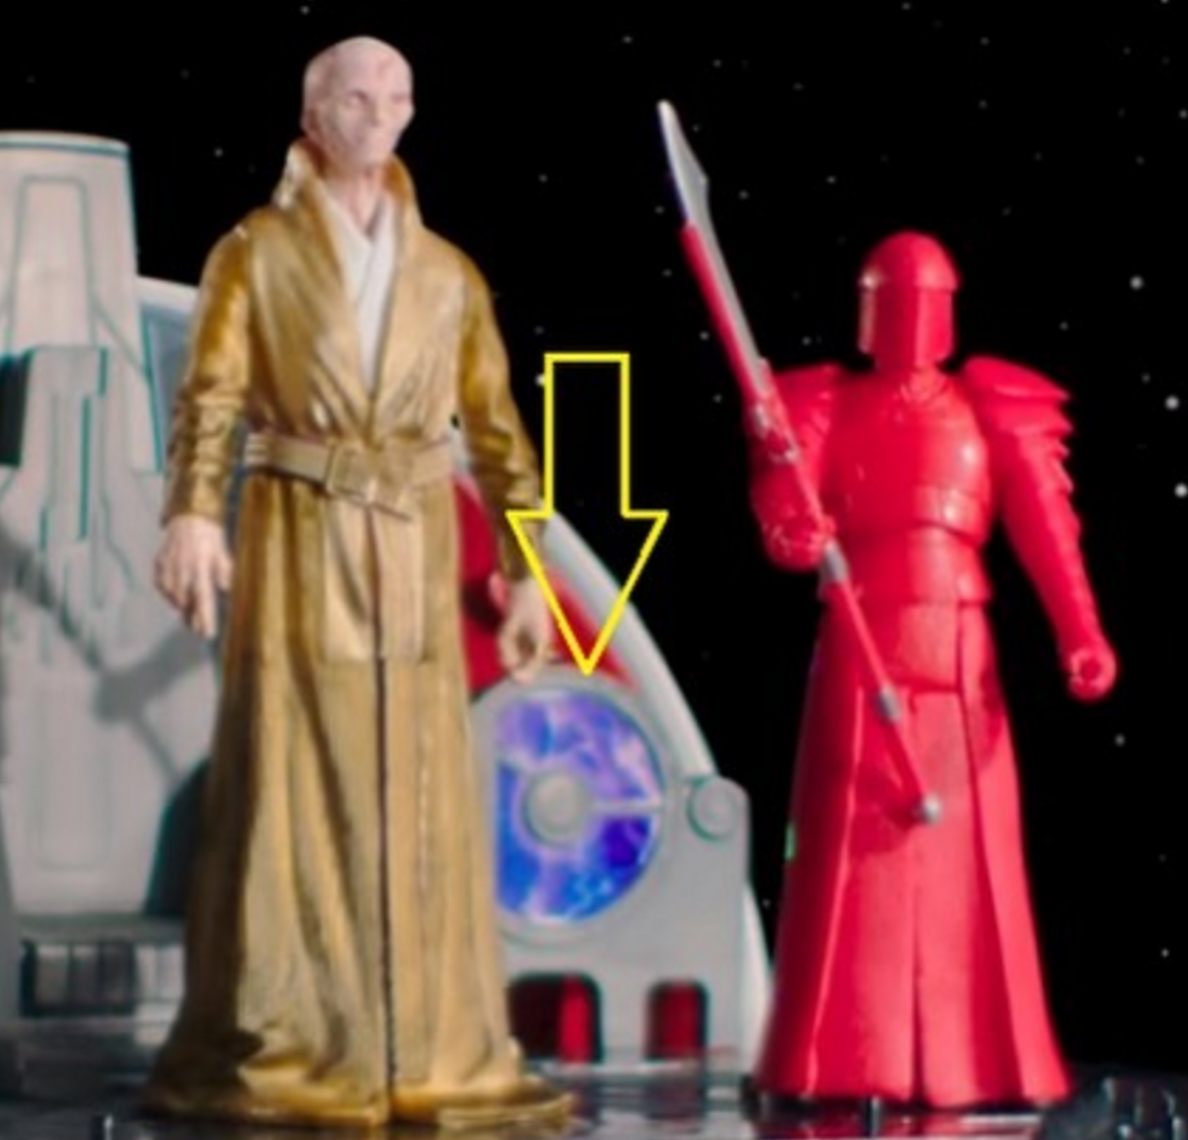 Is Snoke About To Call Upon Ancient Sith Powers In Star Wars: The Last Jedi?